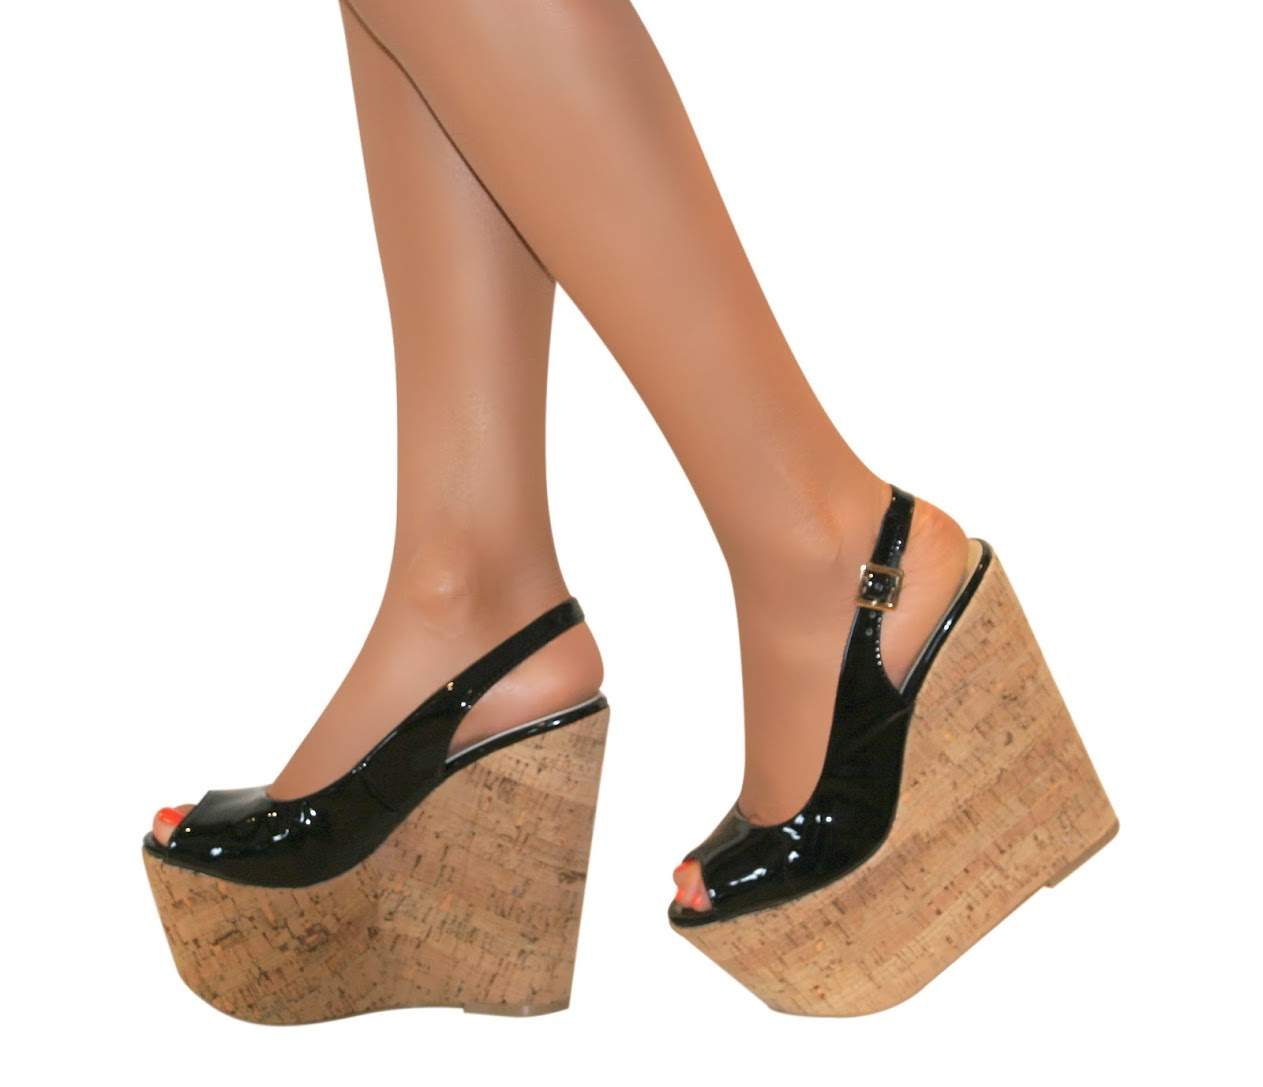 When asked if they should pack high heels for leisure travel to Europe, it seems that most women agree: skip the heels and pack comfortable wedge heels if you can't do without a dressy shoe. The cobblestone streets make it difficult to wear traditional heels so locals opt for wedges, too.